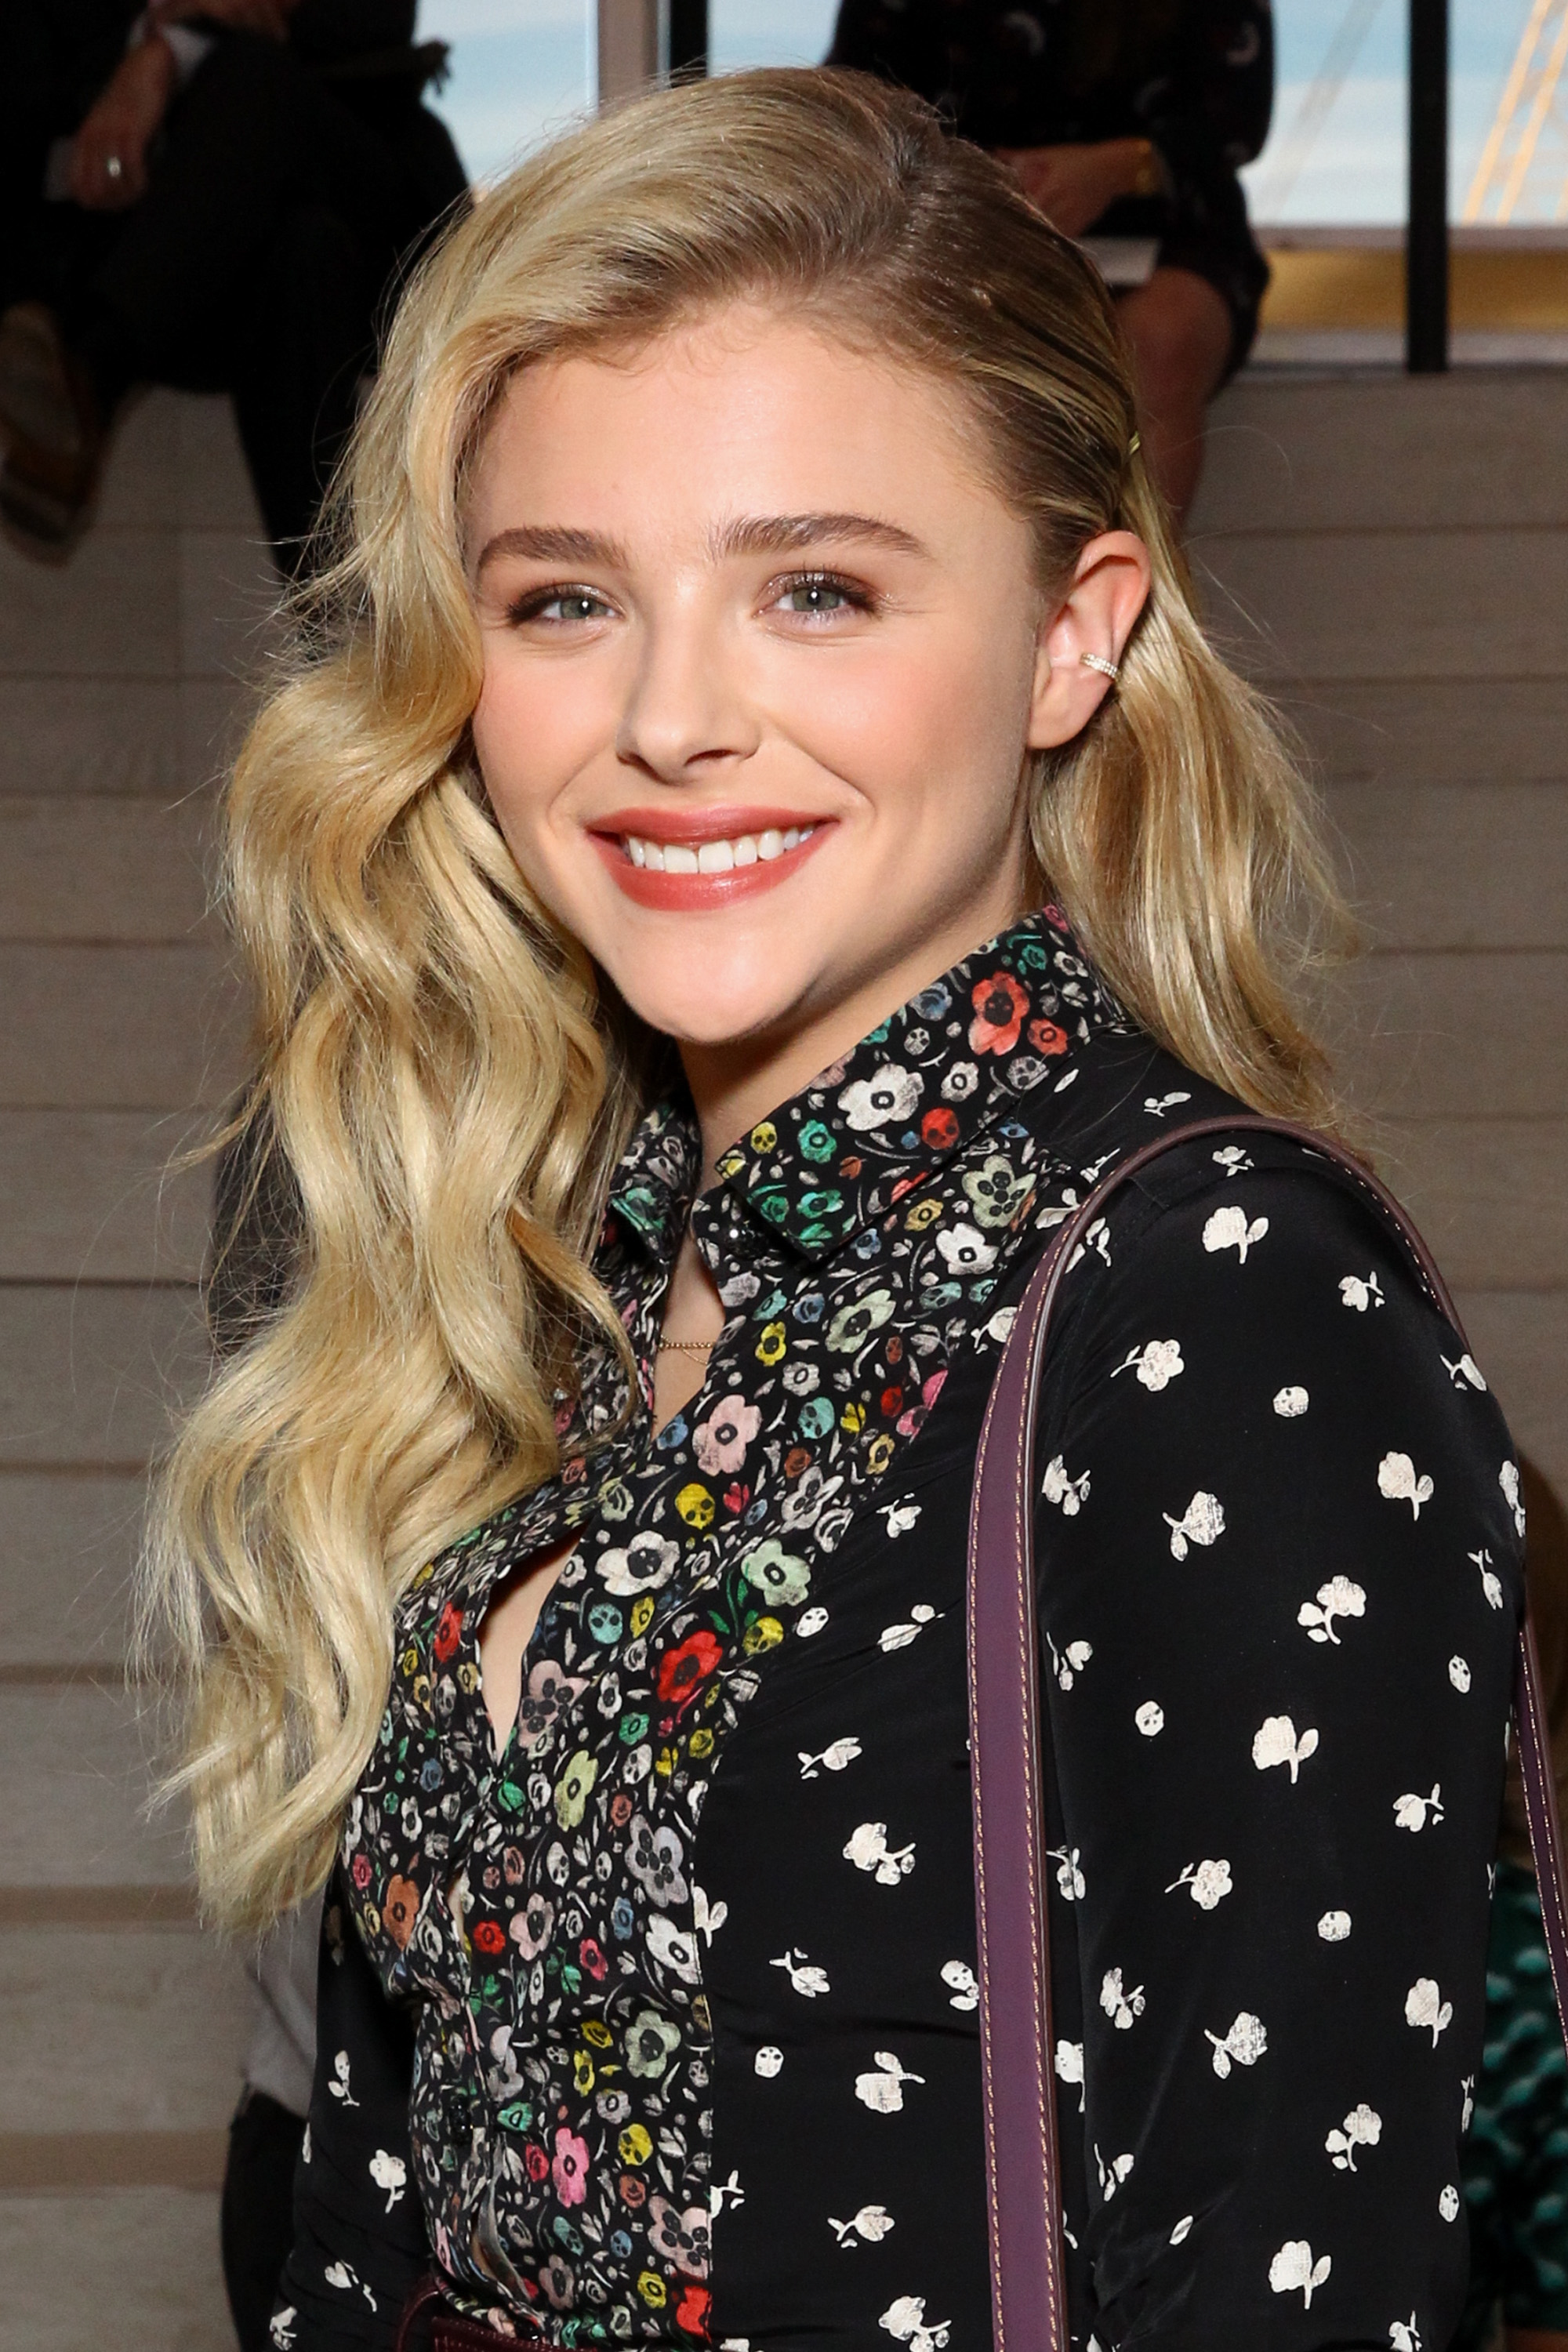 Chloe-Grace-Moretz-To-Play-The-Little-Mermaid-In-Live-Action-Adaptation